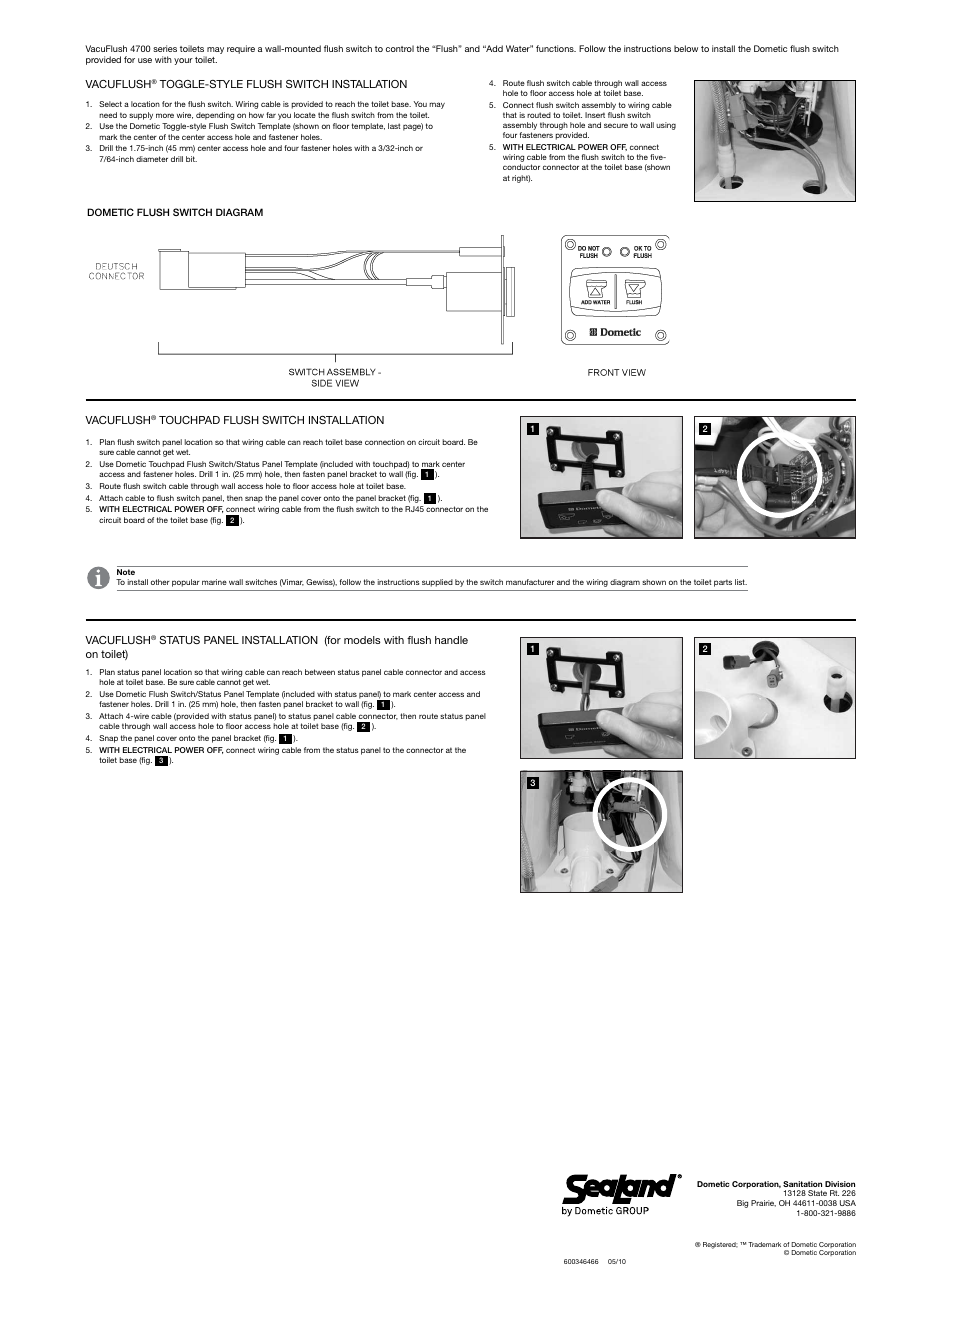 ... sealand vacuflush 4748 toilet page2 sealand vacuflush 4748 toilet user  manual page 2 4 also for